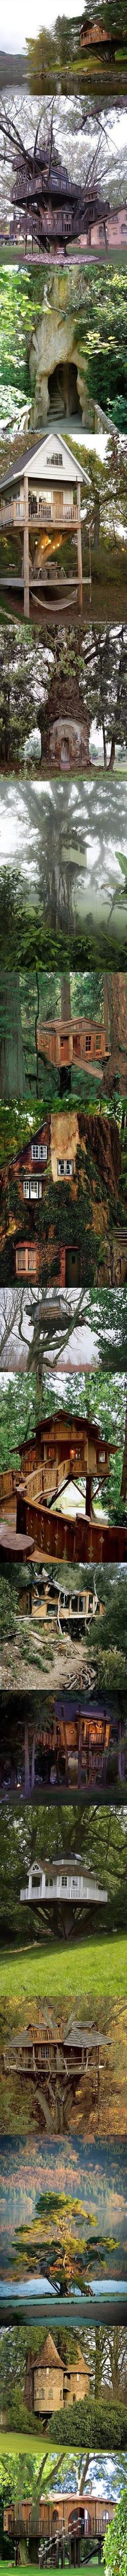 Tree homes, because I shall spend my years as a hermit in a tree house with a extensive library. :D